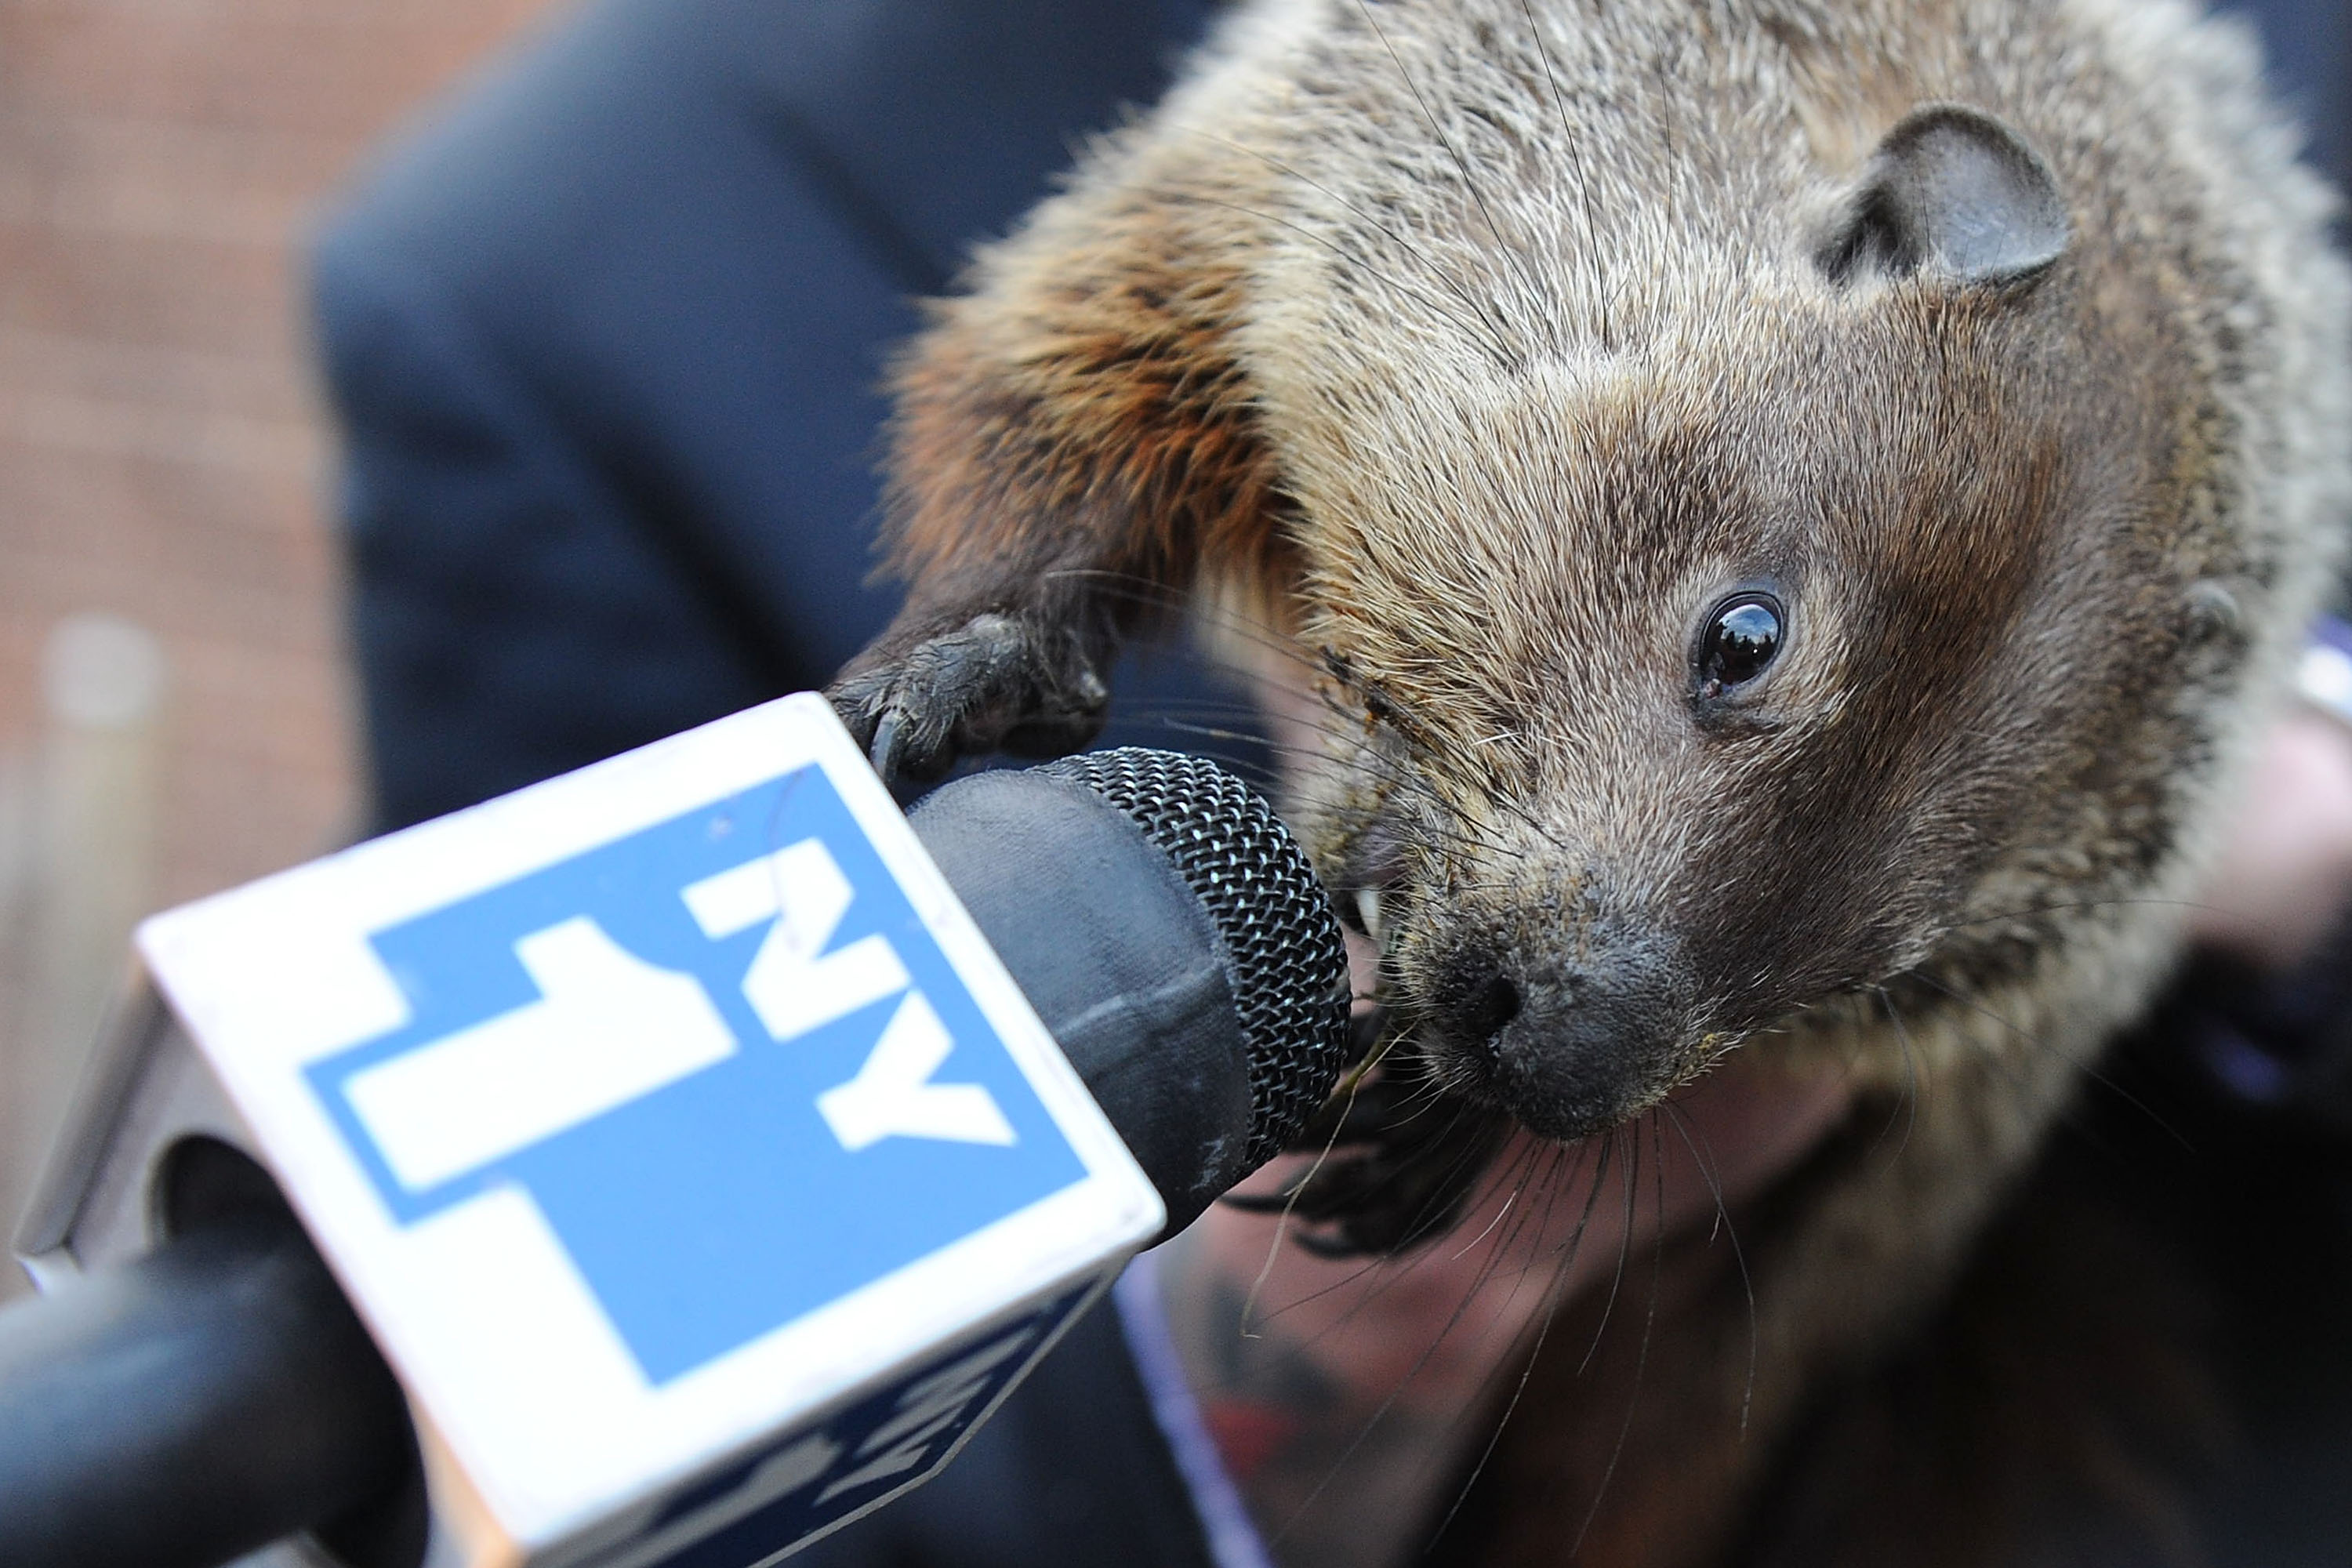 Staten Island Chuck gets up close and personal with NY1 at the Groundhog's Day Ceremony, sponsored by Time Warner Cable, at the Staten Island Zoo where he predicted an early spring. Photo credit: Shahar Azran Photography